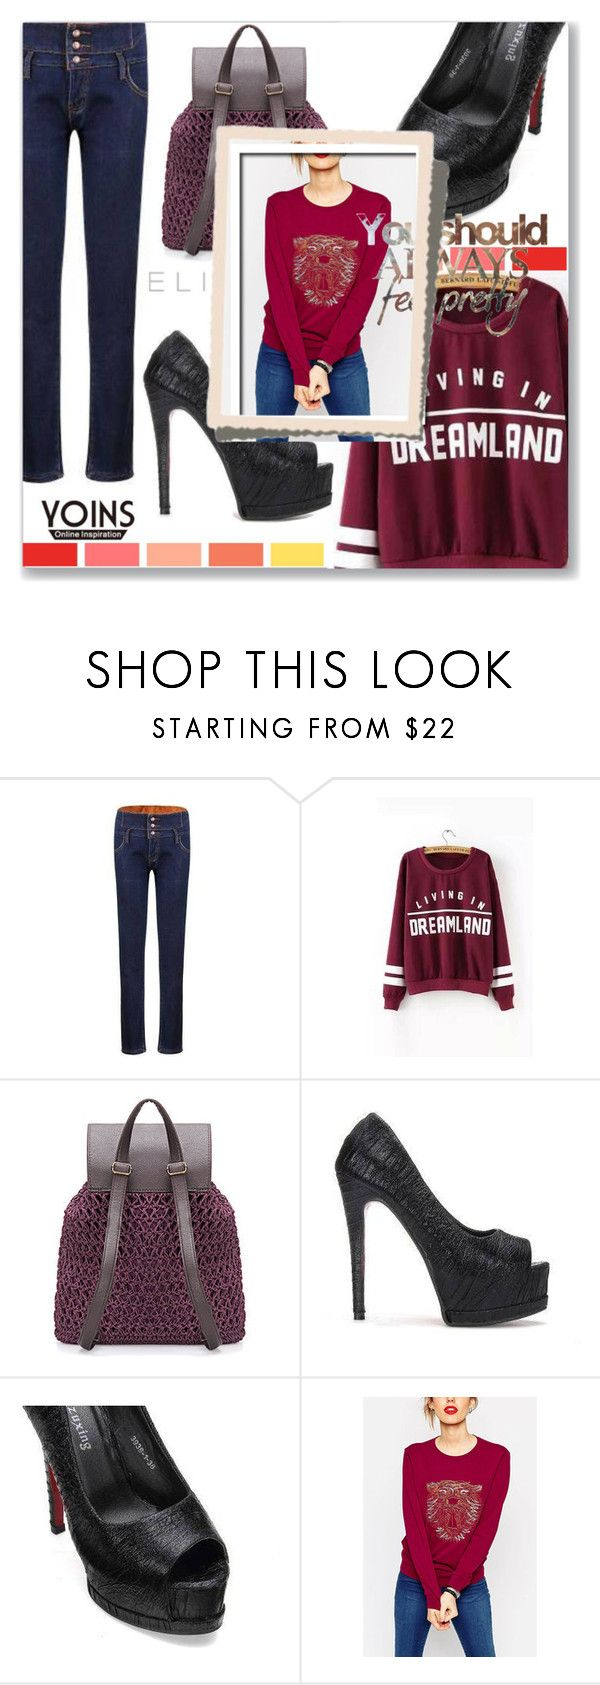 """""""YOINS"""" by kriz-nambikatt on Polyvore featuring Elie Saab and yoins"""